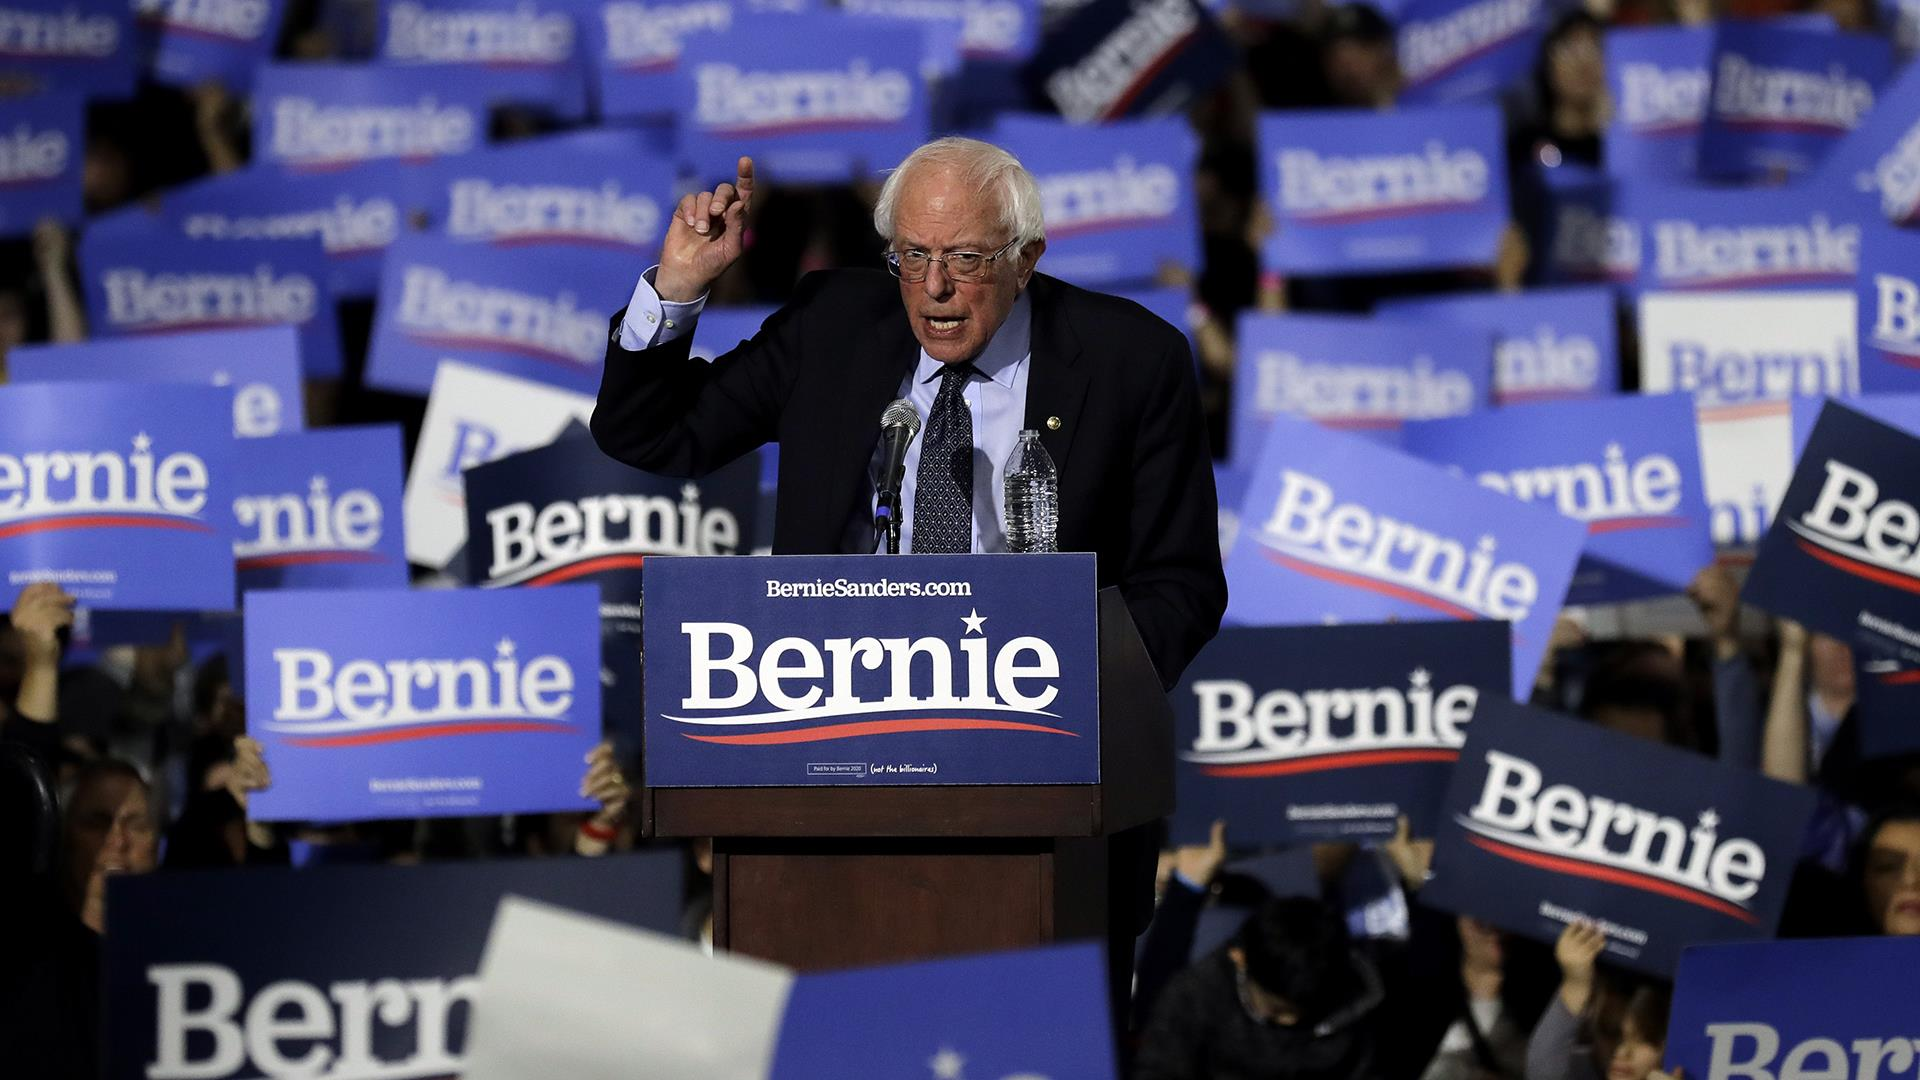 Bernie Sanders calls for 'political revolution' at Chicago rally